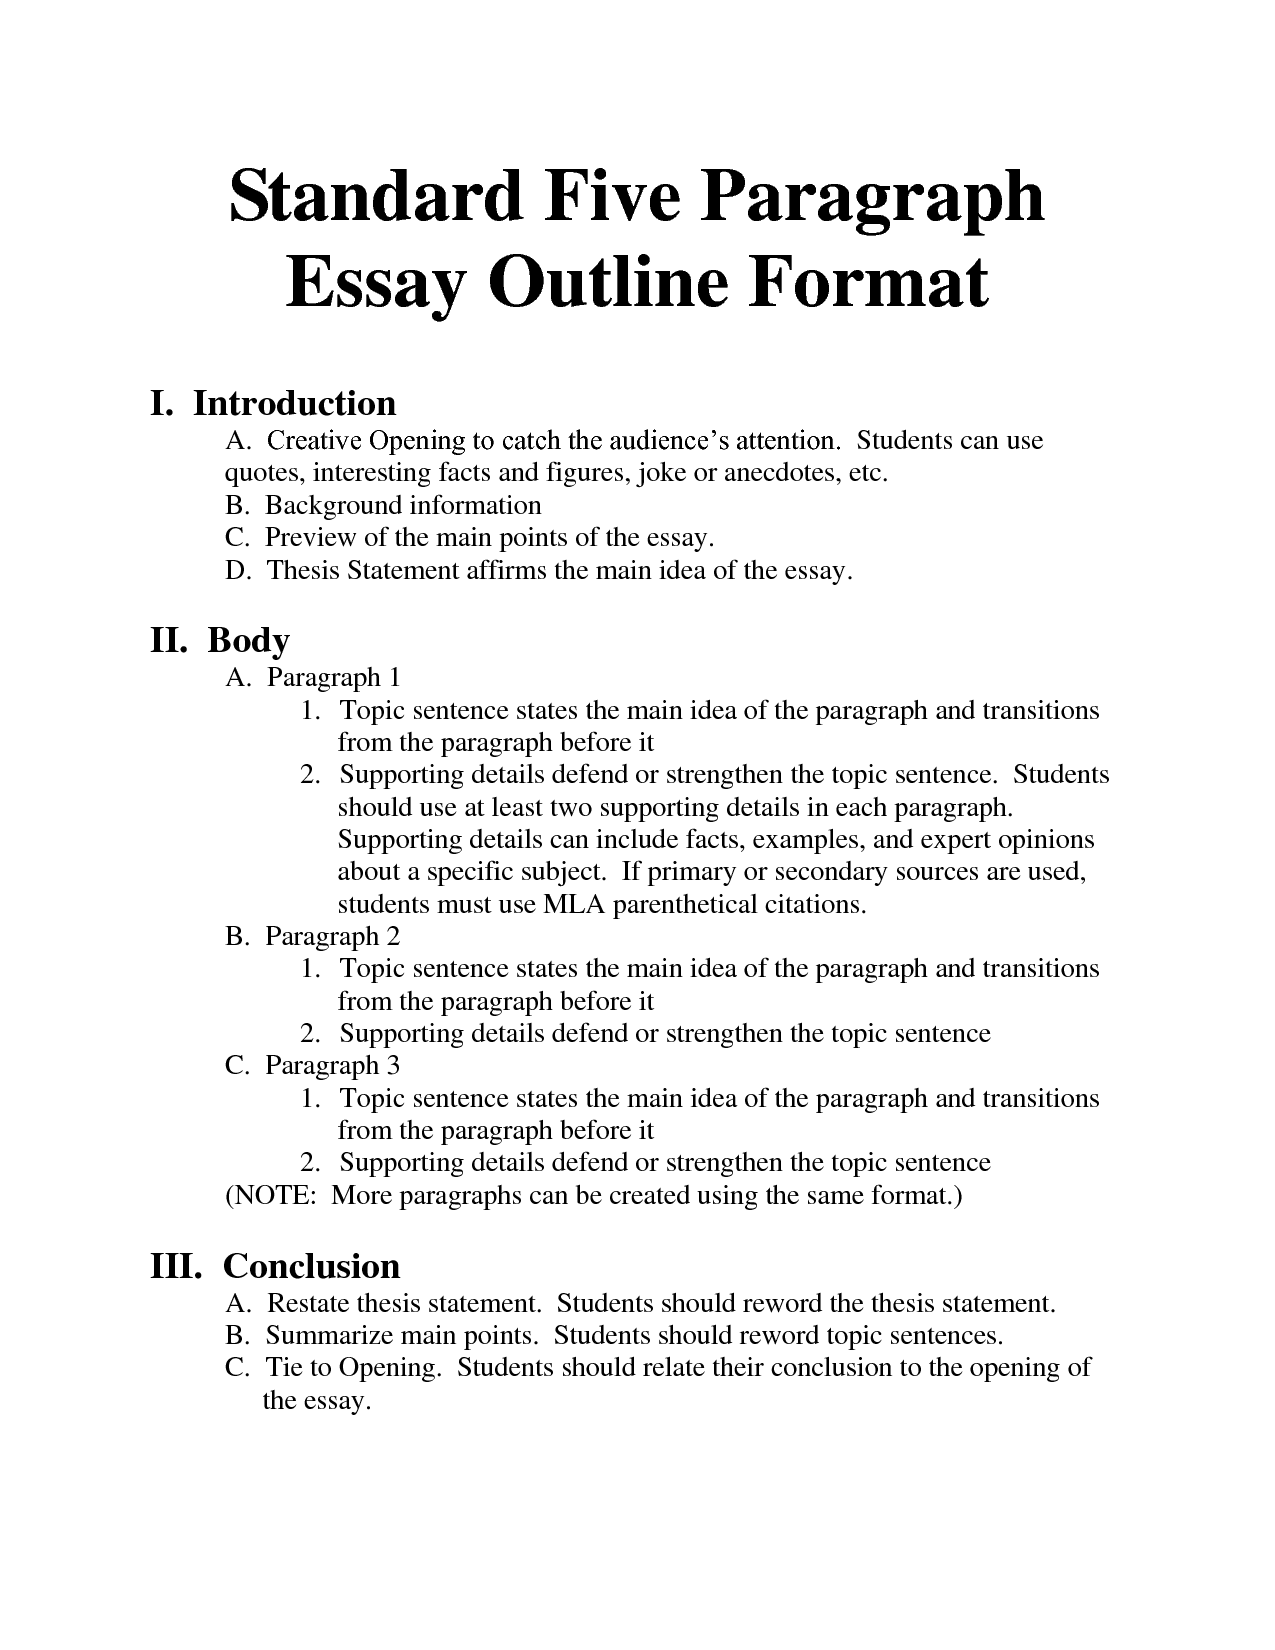 Standard Essay Format - Bing Images | ESSAYS HOMESCHOOL | Pinterest ...